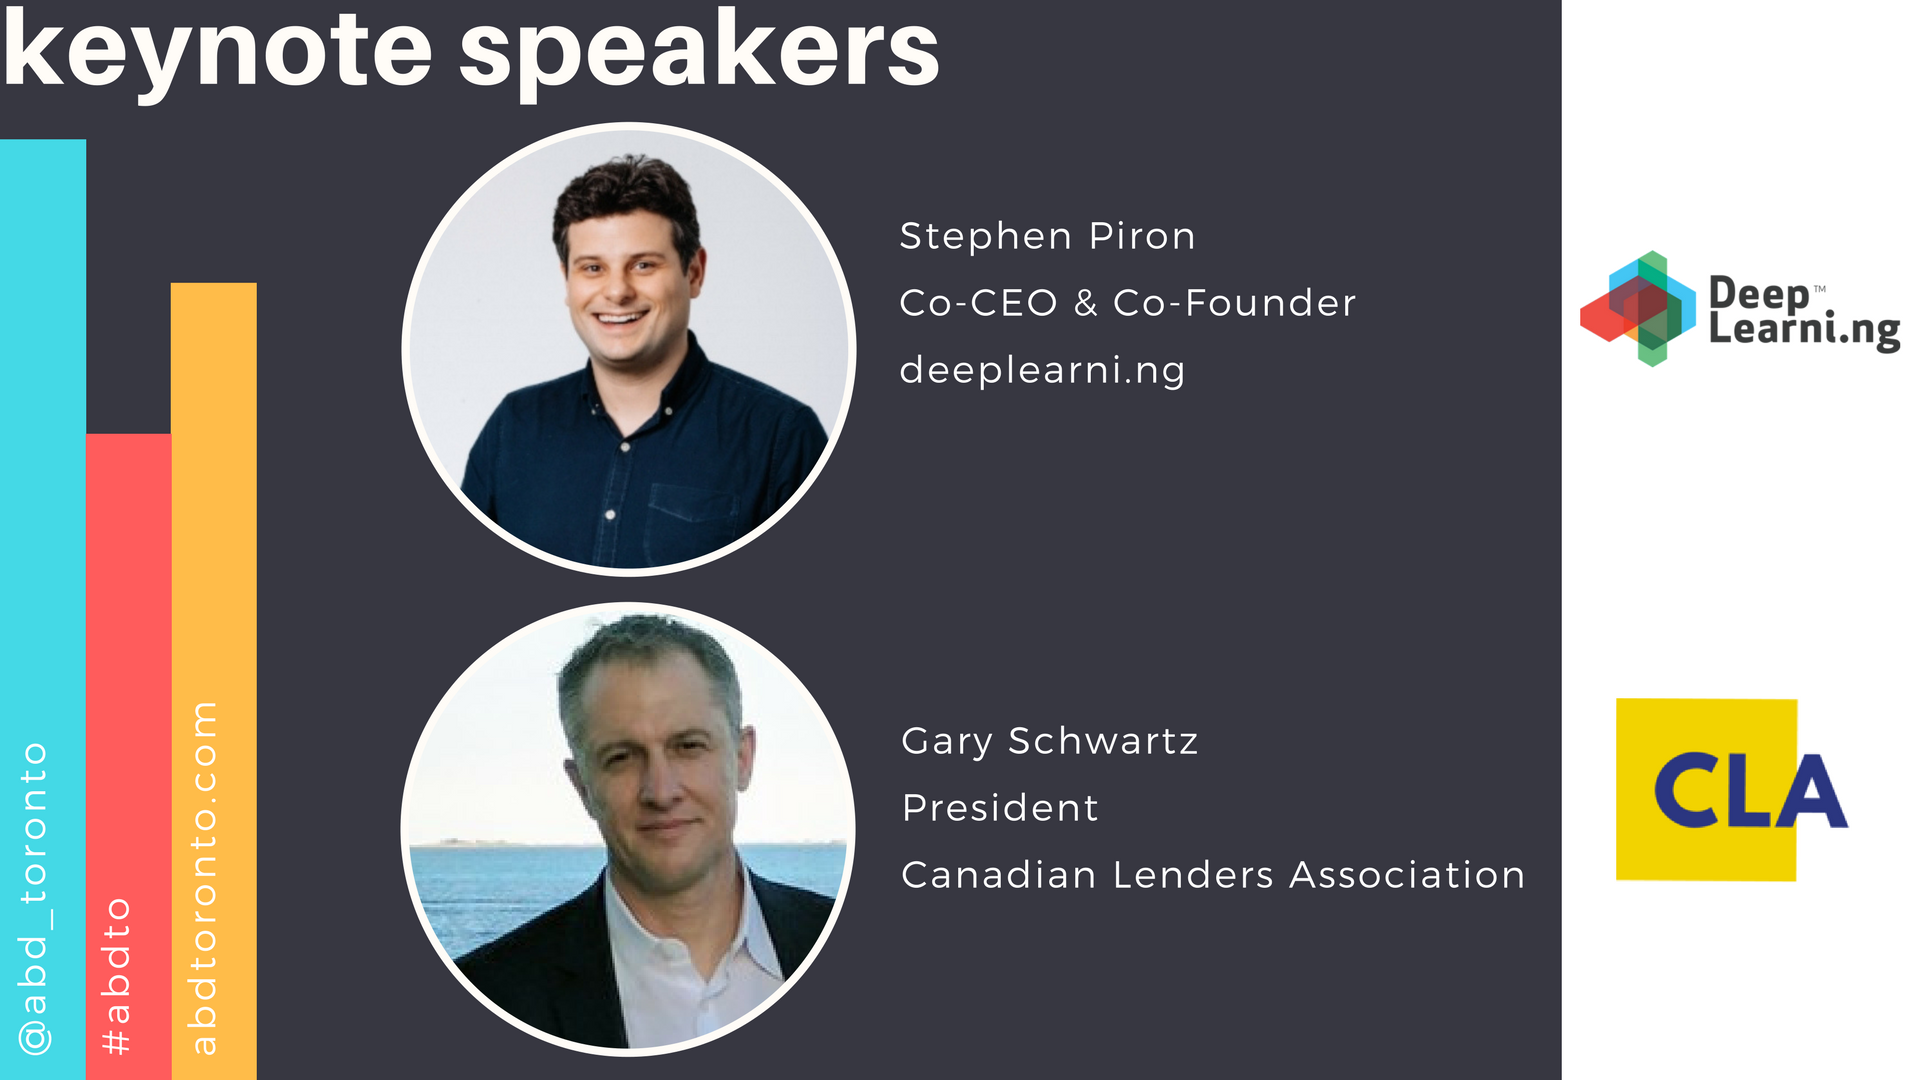 Featuring our 2018 keynotes Stephen Piron from deeplearni.ng and Gary Schwartz from the Canadian Lenders Association!